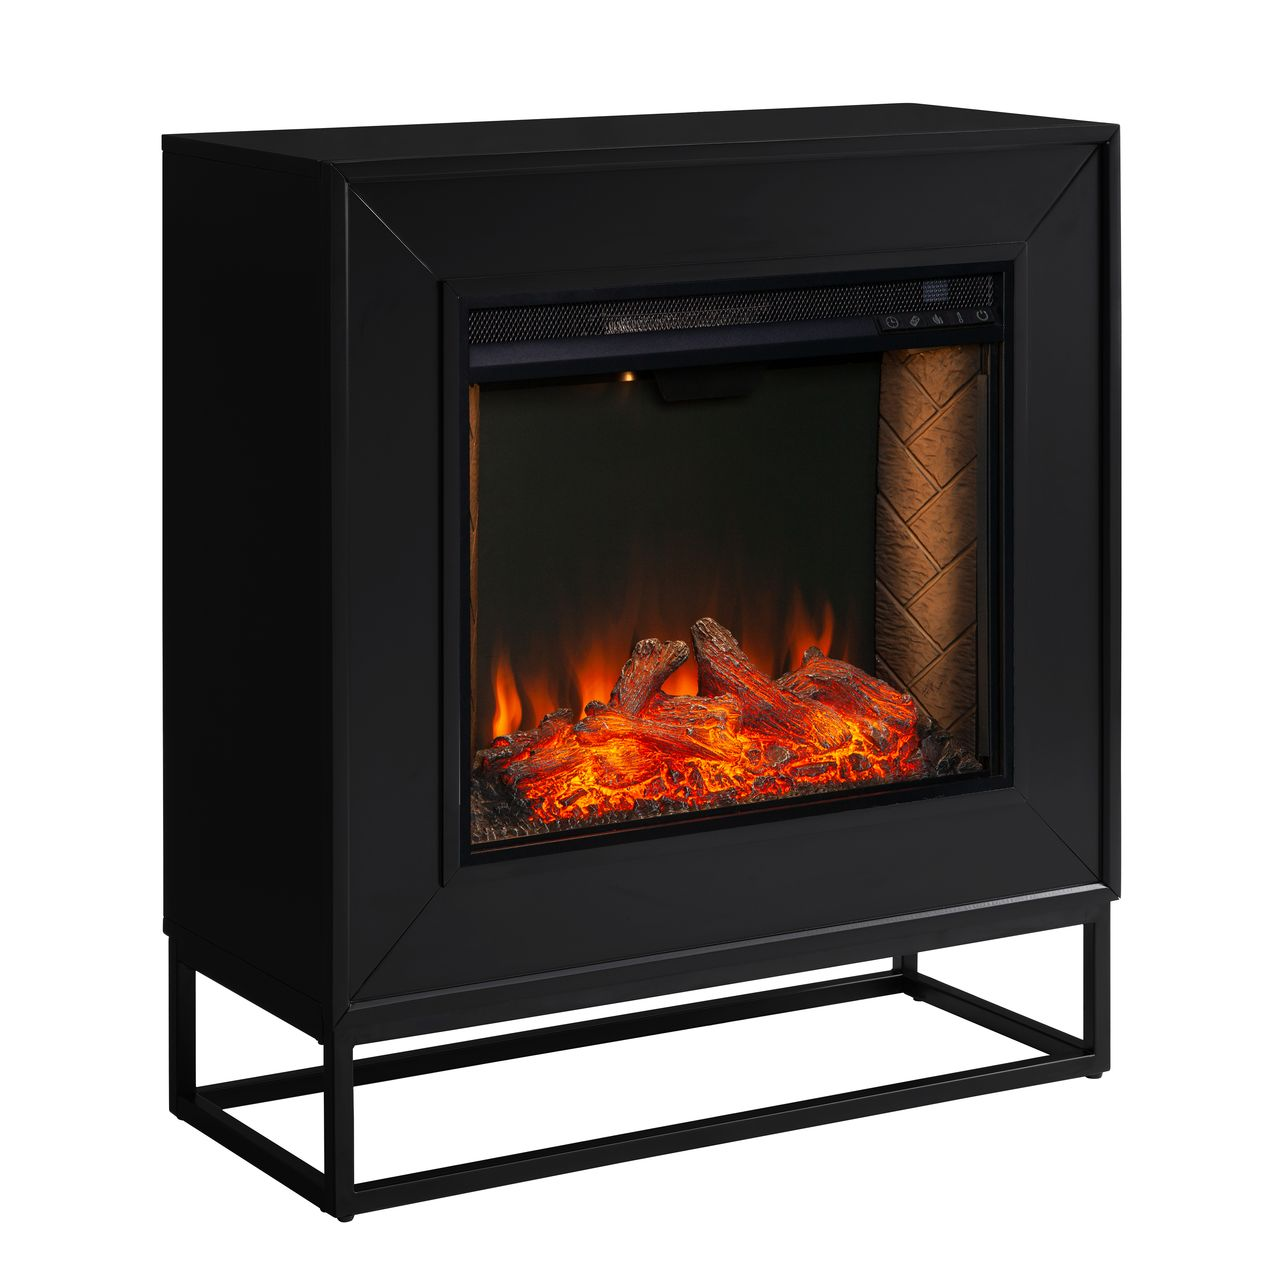 Holly & Martin Frescan Alexa-Enabled Smart Fireplace in Black